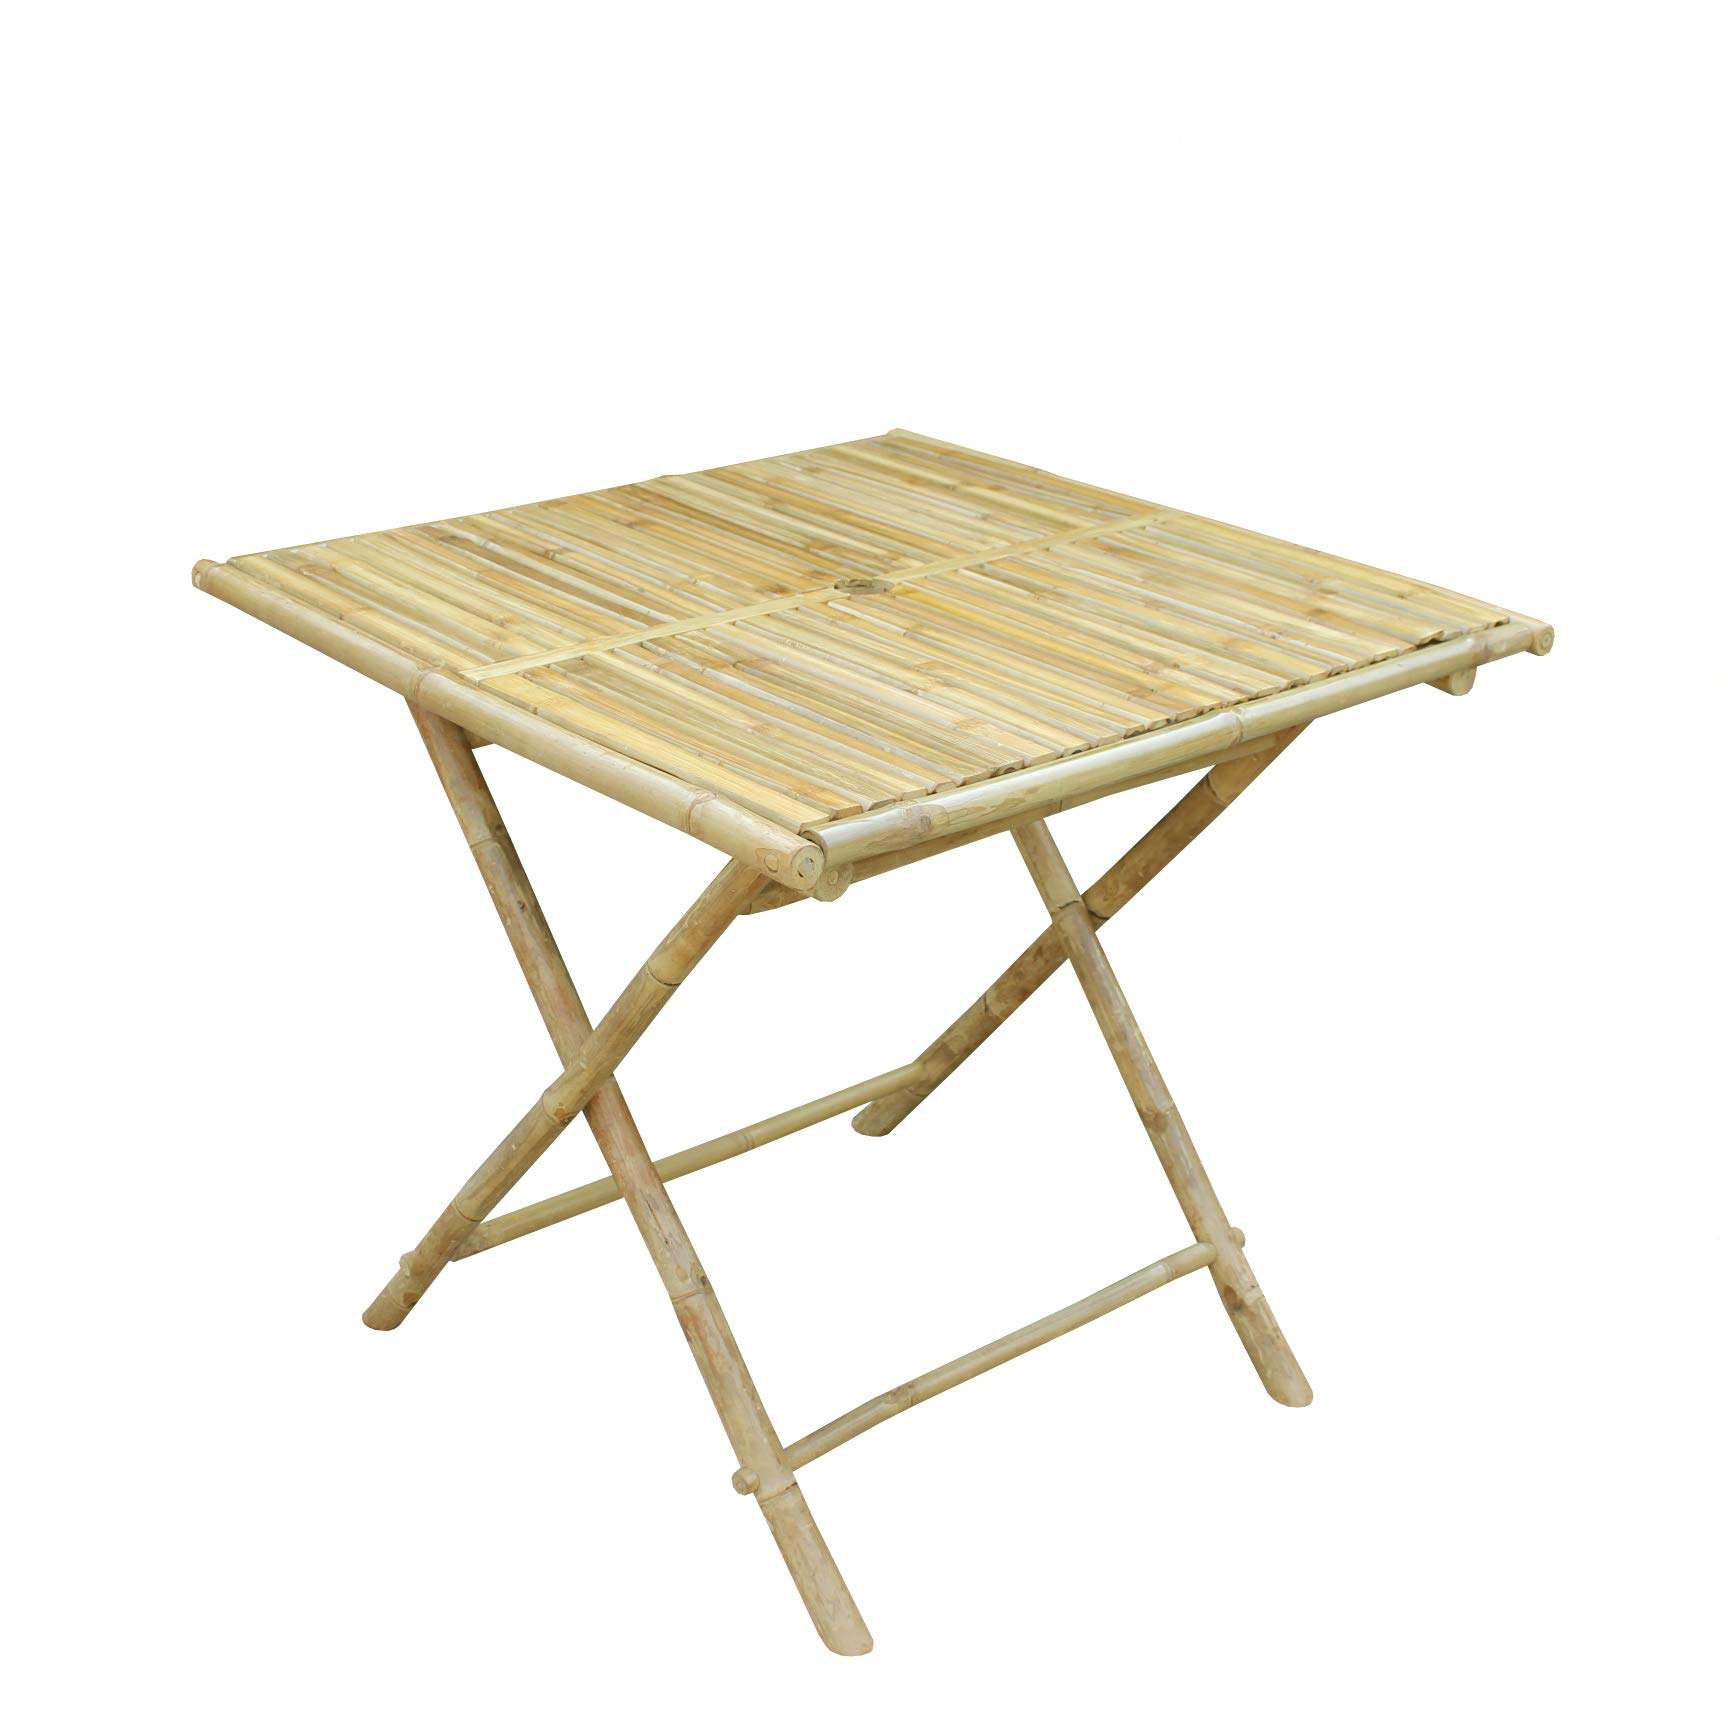 Zero Emission World Bamboo Hand Crafted Collapsible Table, Square by Zero Emission World